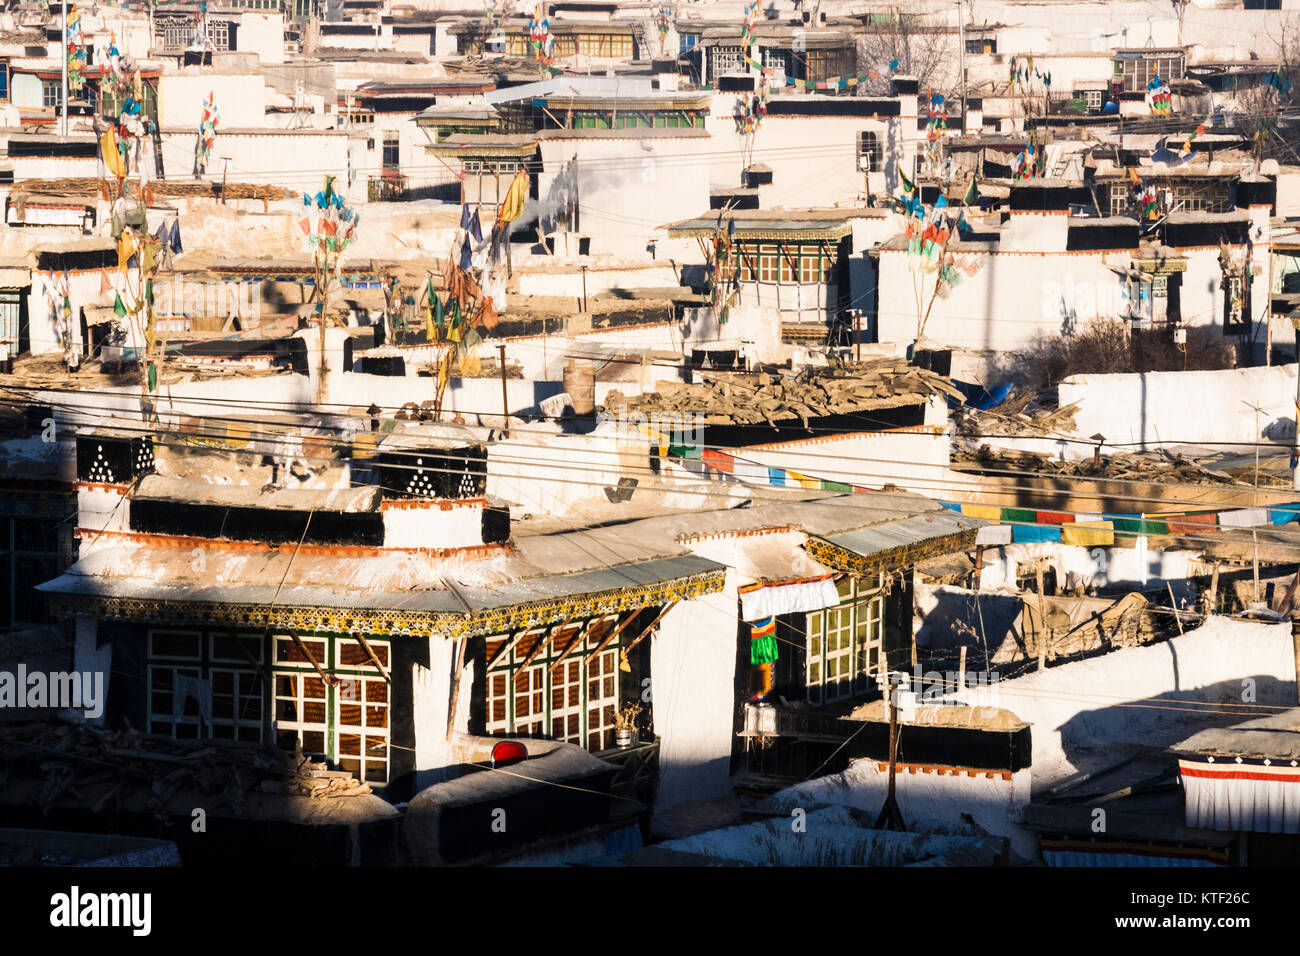 Traditional Tibetan dwellings at Shigatse, Tibet - Stock Image